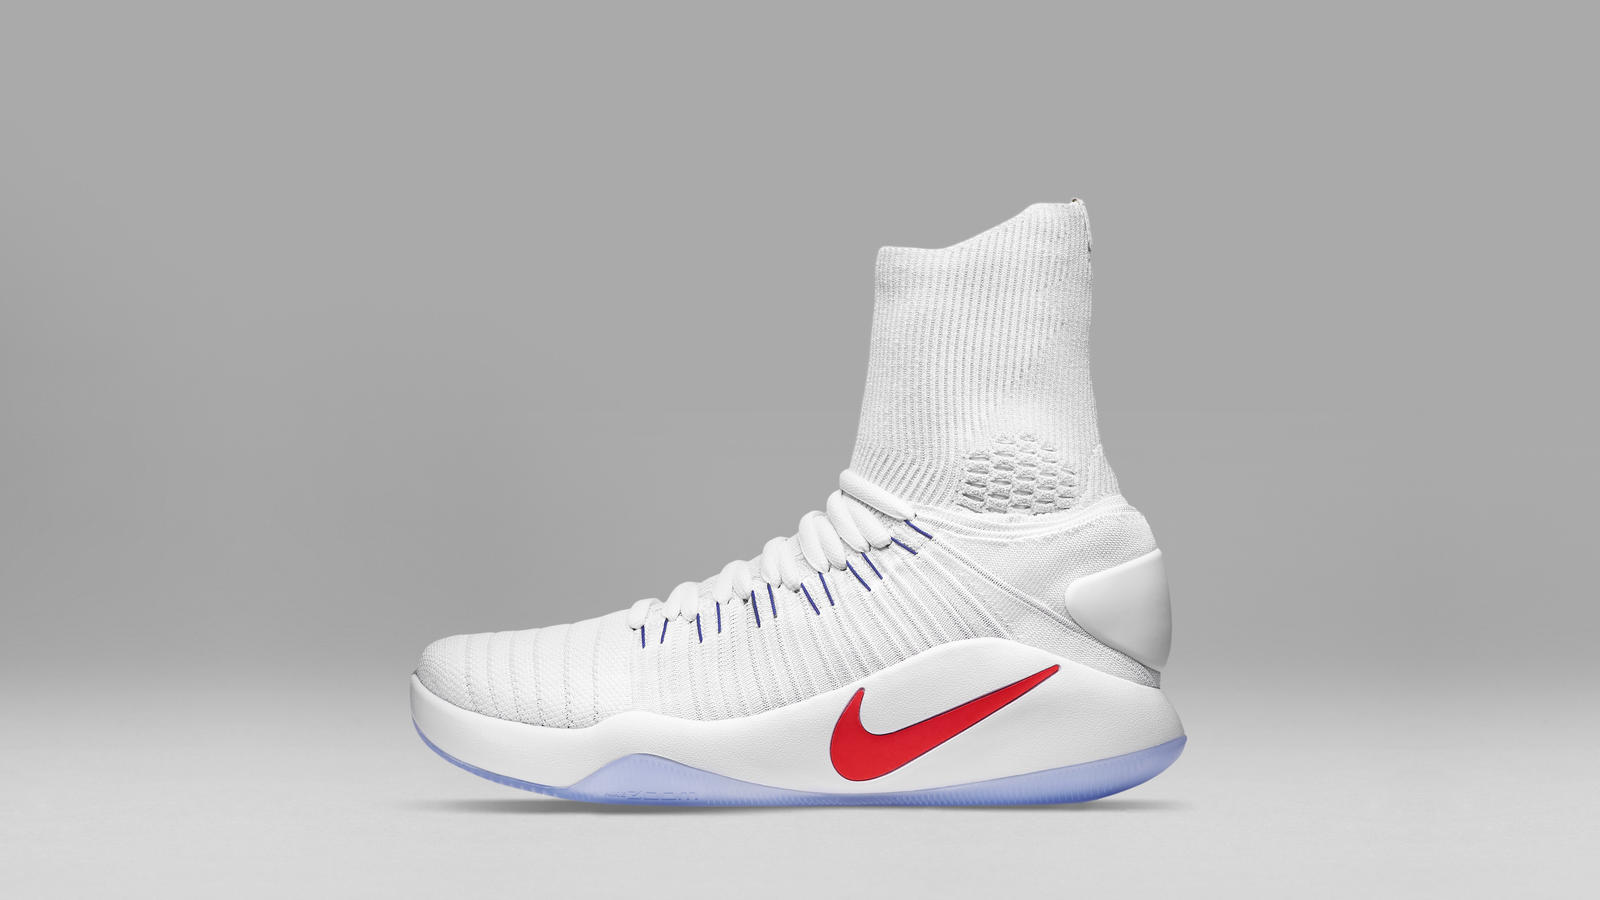 Nike Hyperdunks – Now in market